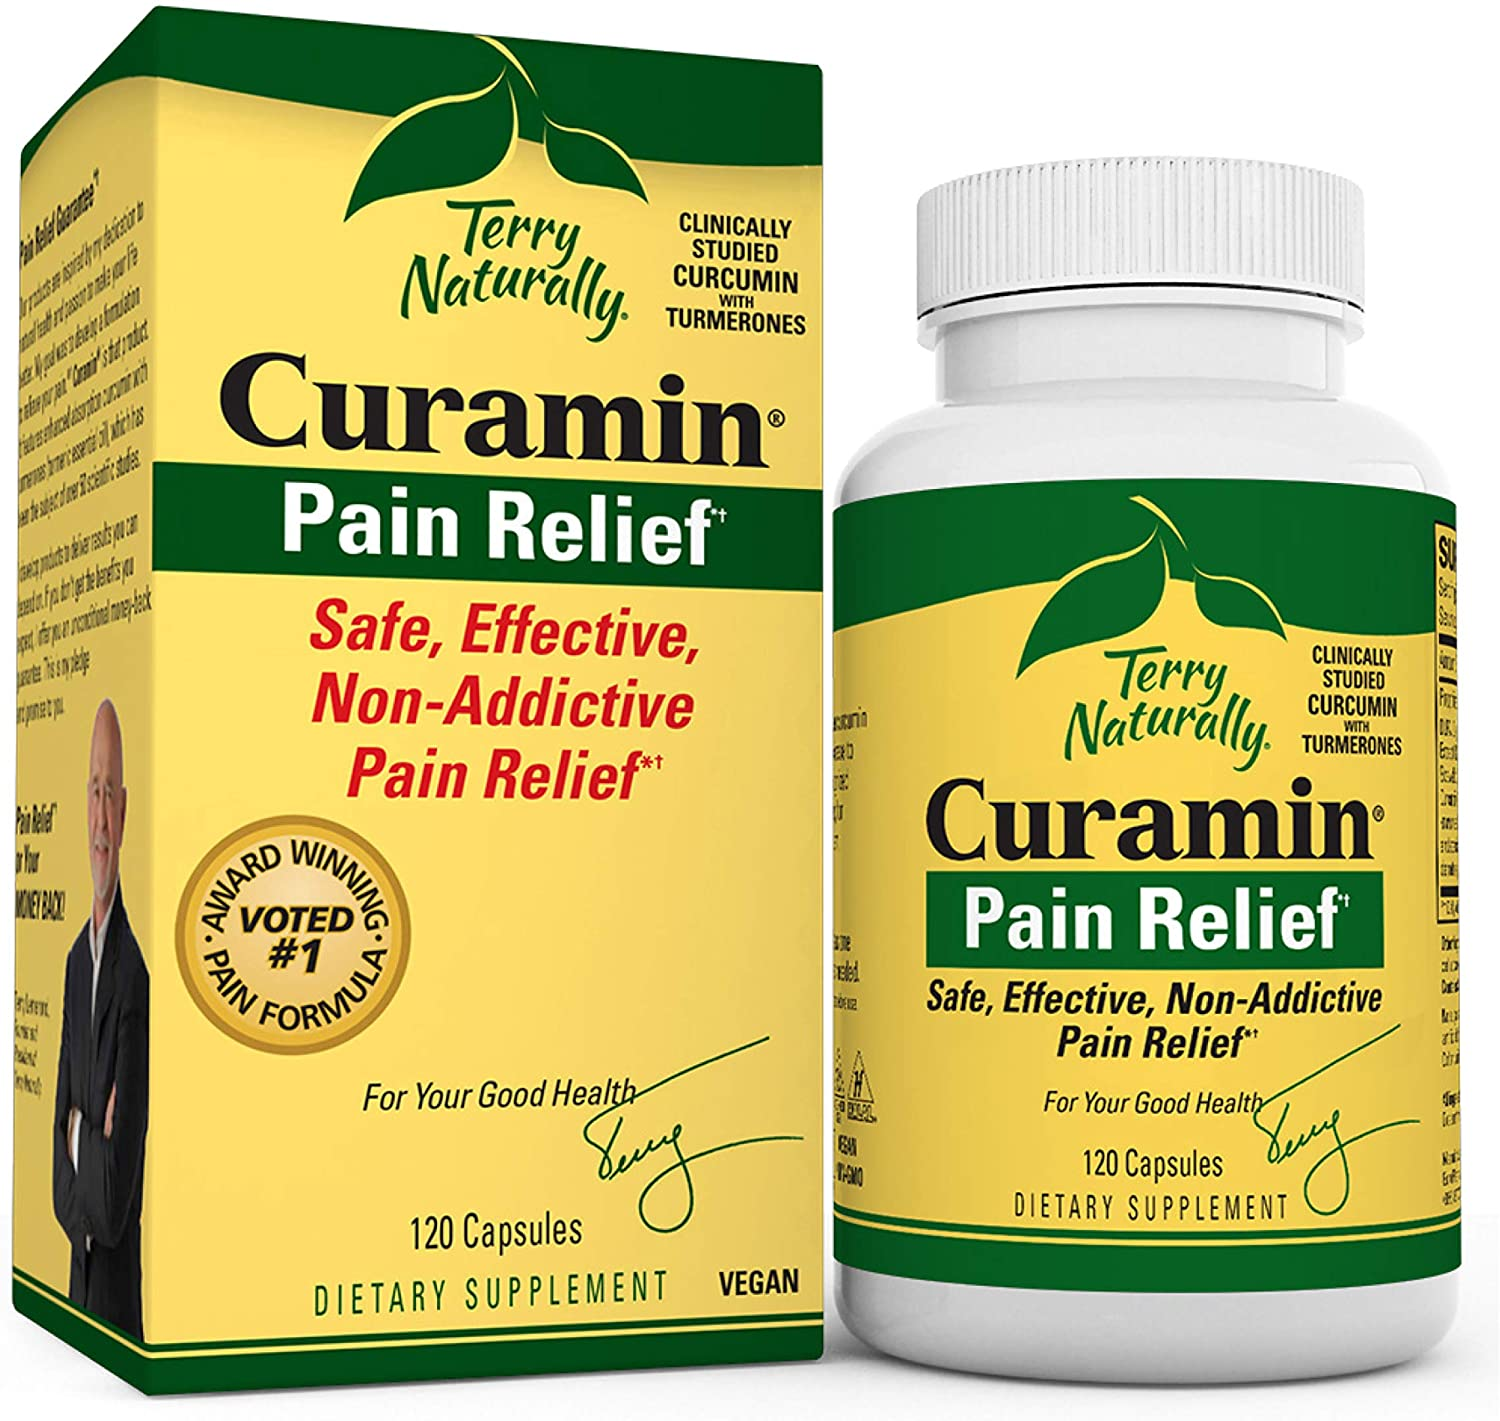 Terry Naturally Curamin - 120 Vegan Capsules - Non-Addictive Pain Relief Supplement with Curcumin from Turmeric, Boswellia & DLPA - Non-GMO, Gluten-Free - 40 Servings: Health & Personal Care